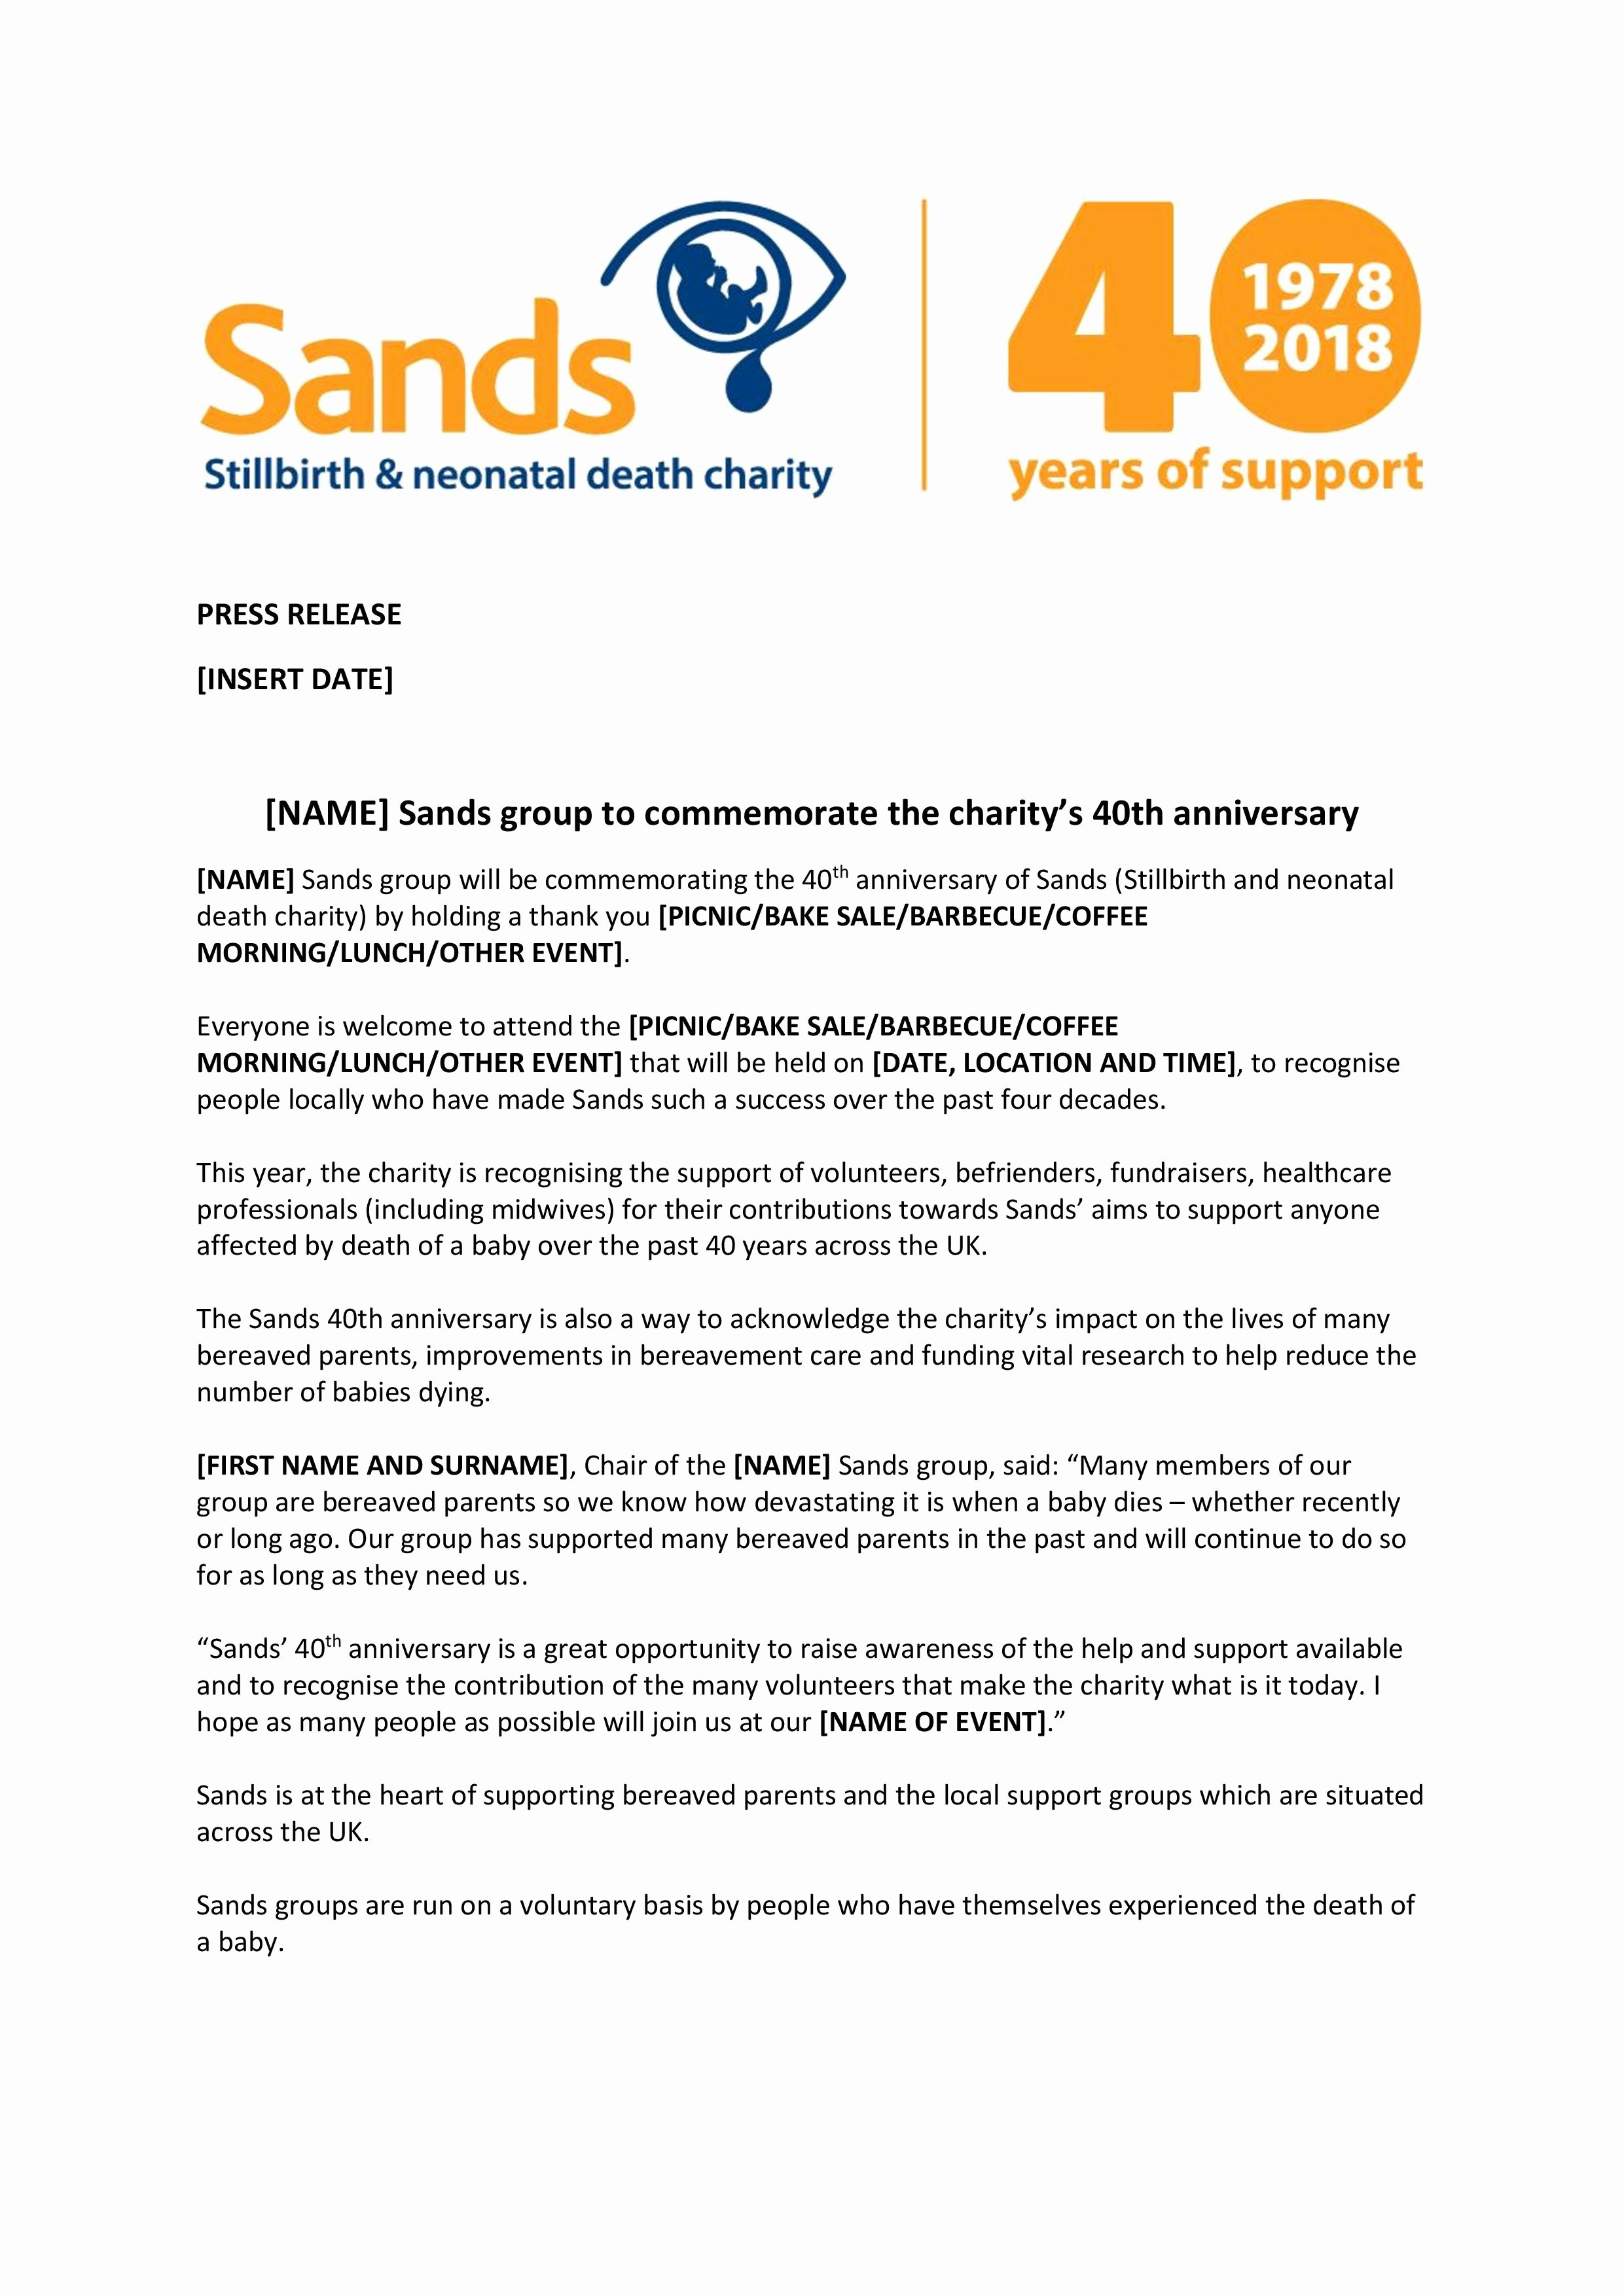 Free Press Releases Templates New Press Release Template for Sands Groups